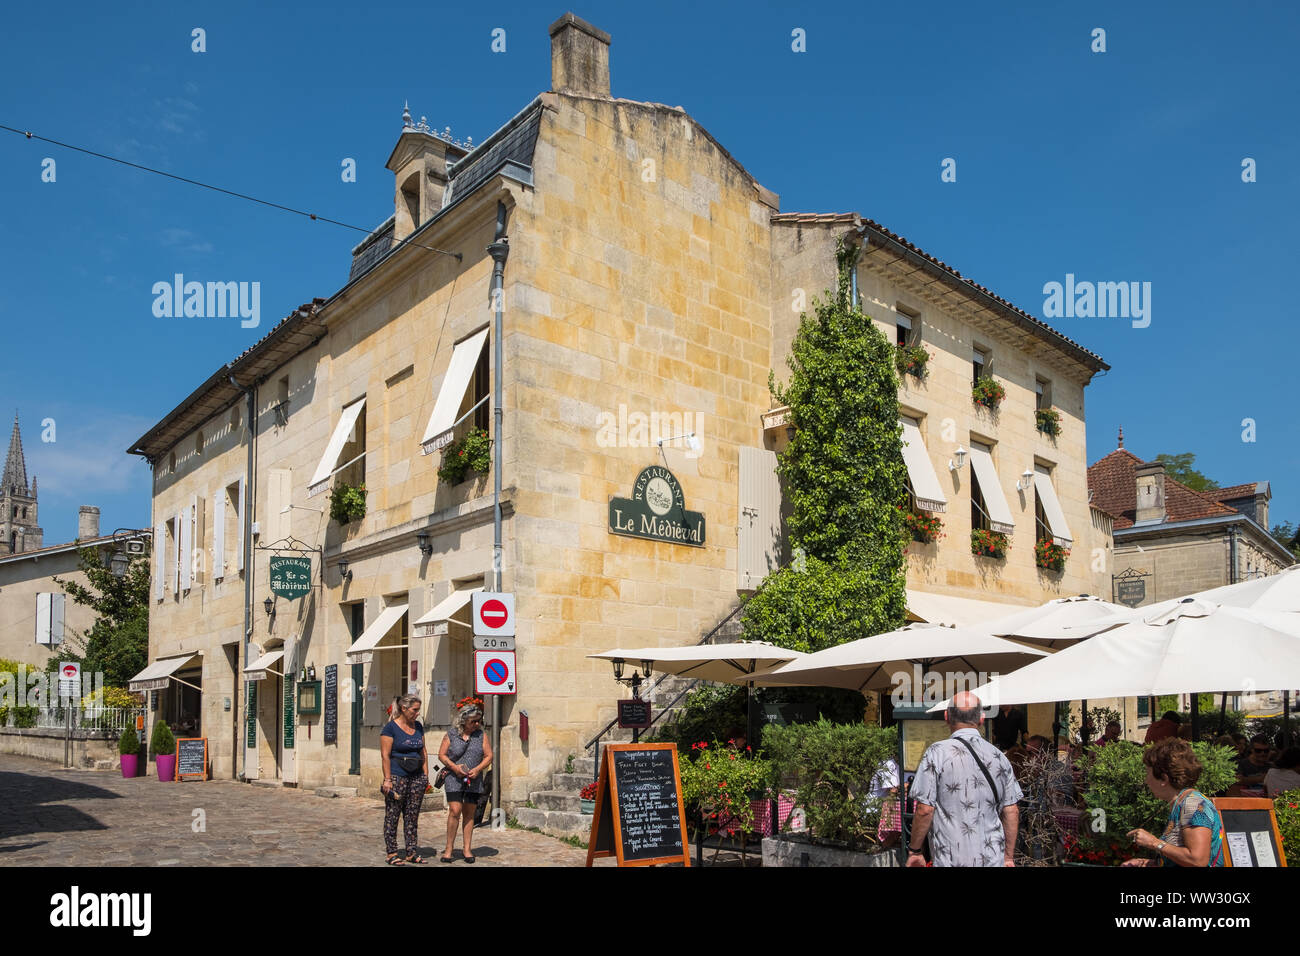 The centre of the historic Unesco listed town of Saint-Emilion in Bordeaux, Gironde, France Stock Photo